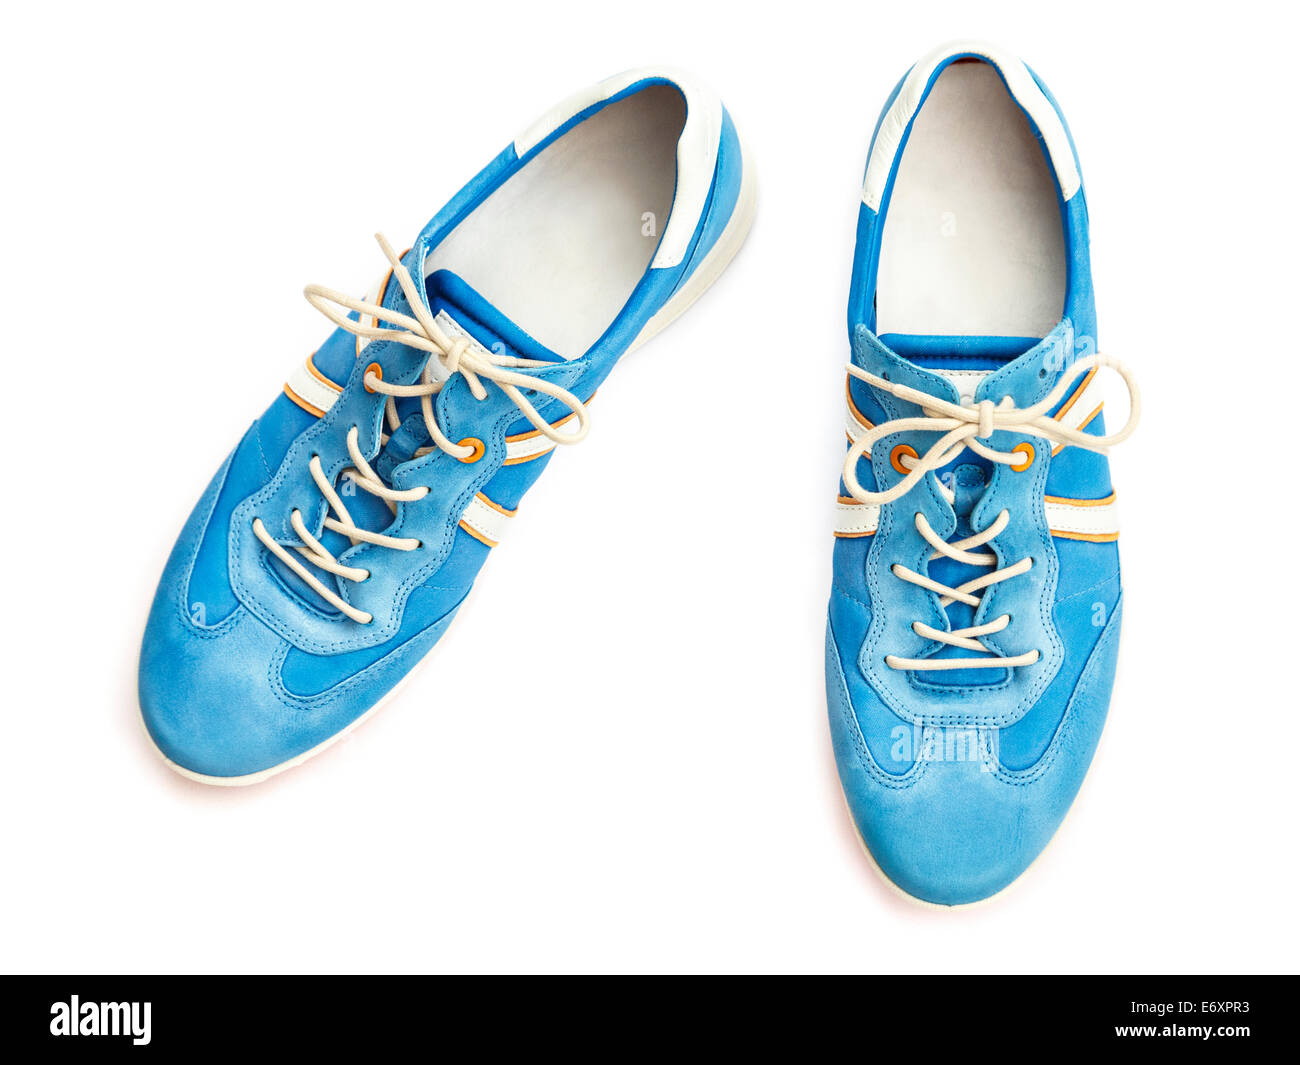 A pair of ladies' new blue lace-up trainer style casual walking shoes sneakers cut-out and isolated on a white - Stock Image